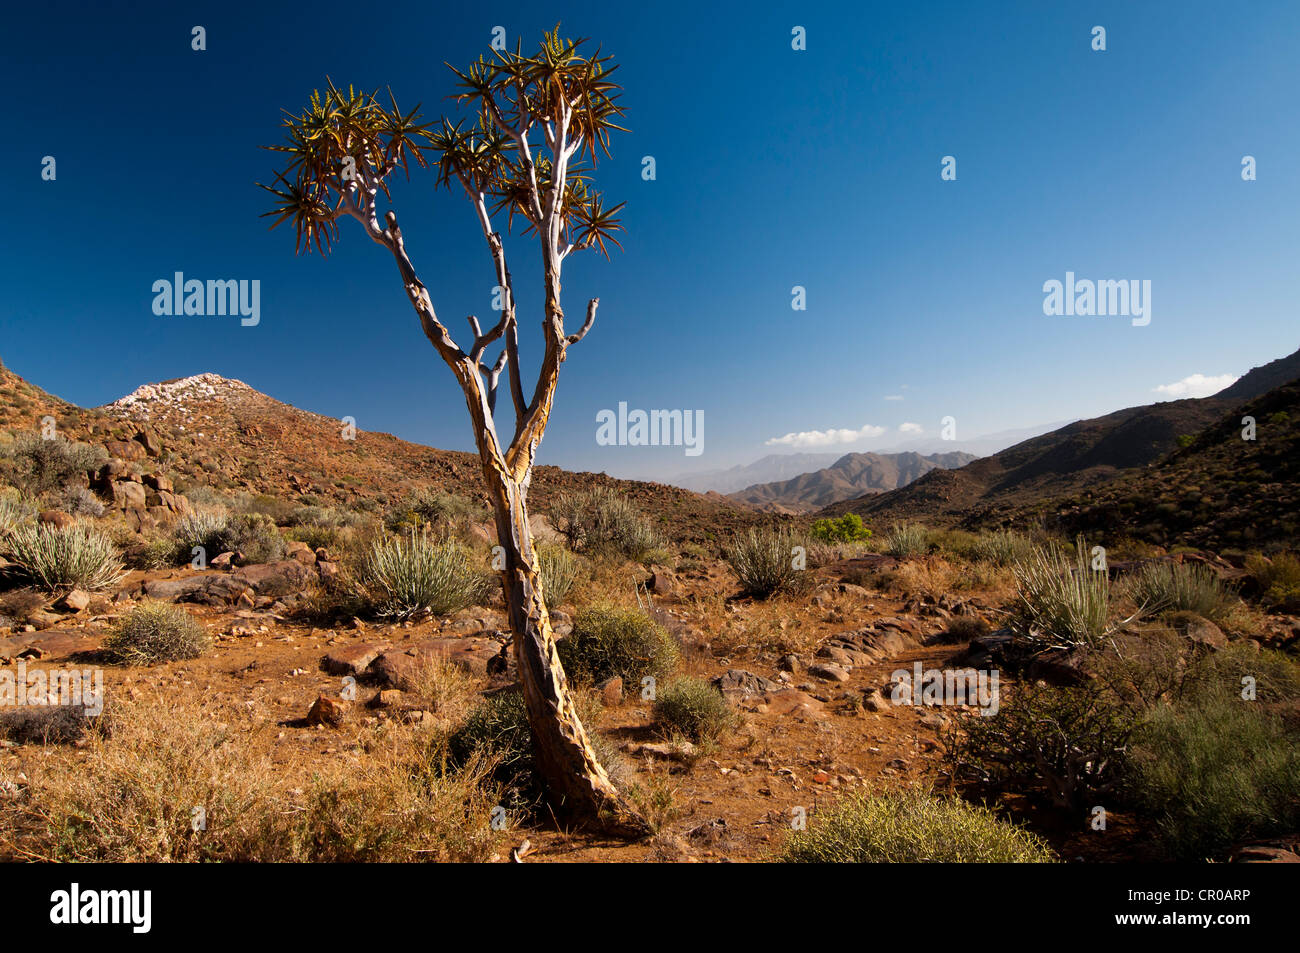 Quiver Tree or Kokerboom (Aloe dichotoma), Richtersveld National Park, Northern Cape, South Africa, Africa - Stock Image